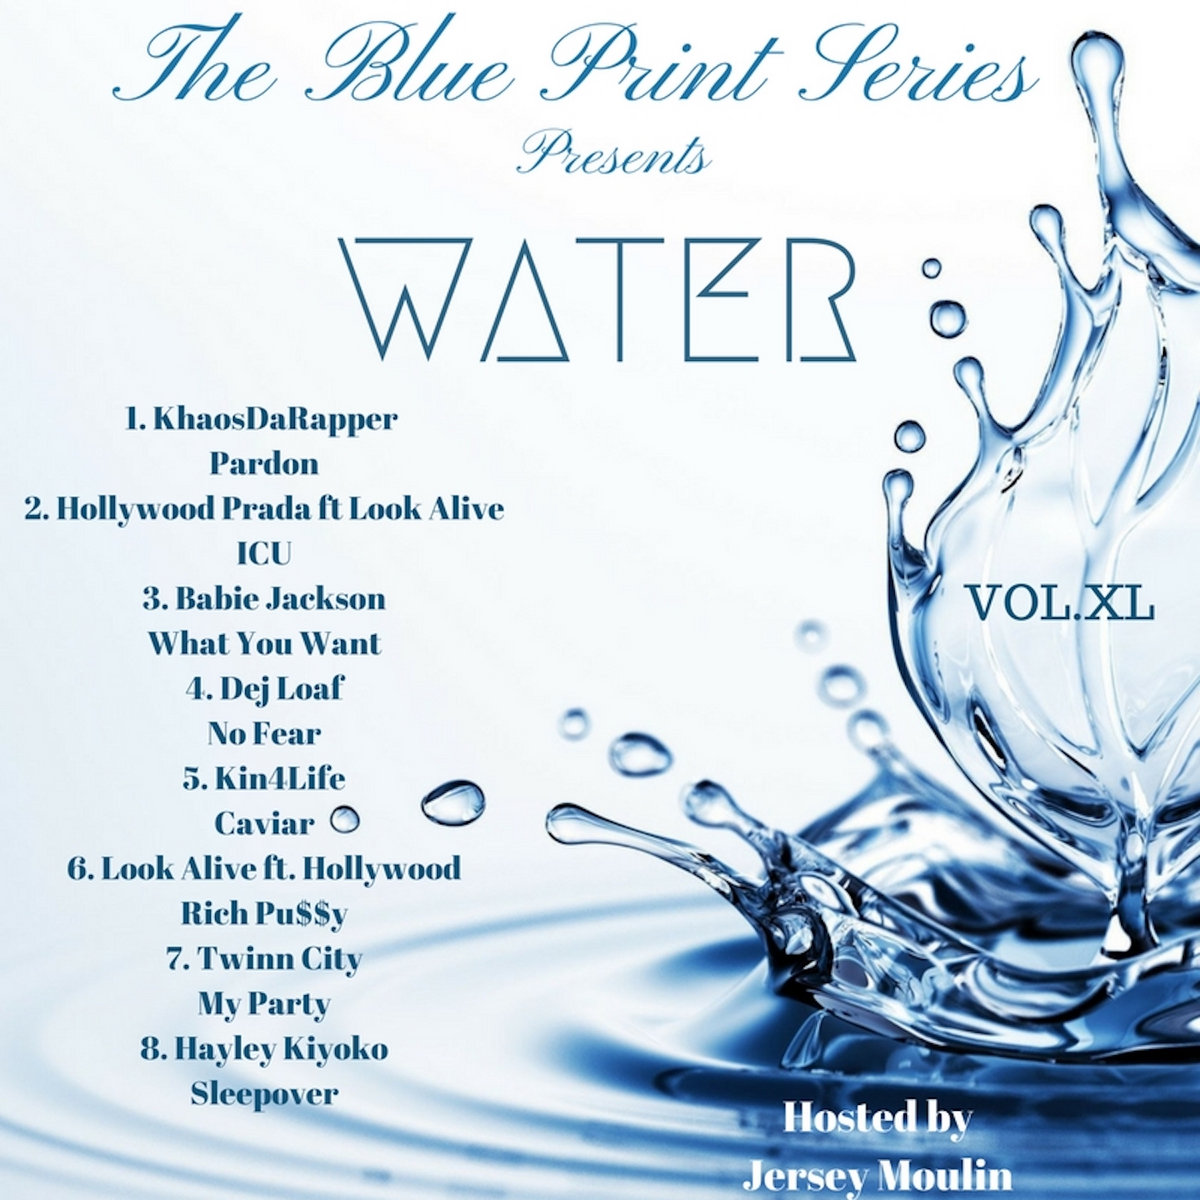 Rich pussy the blue print series from the blueprint series vol 11 water by the blue print series malvernweather Gallery